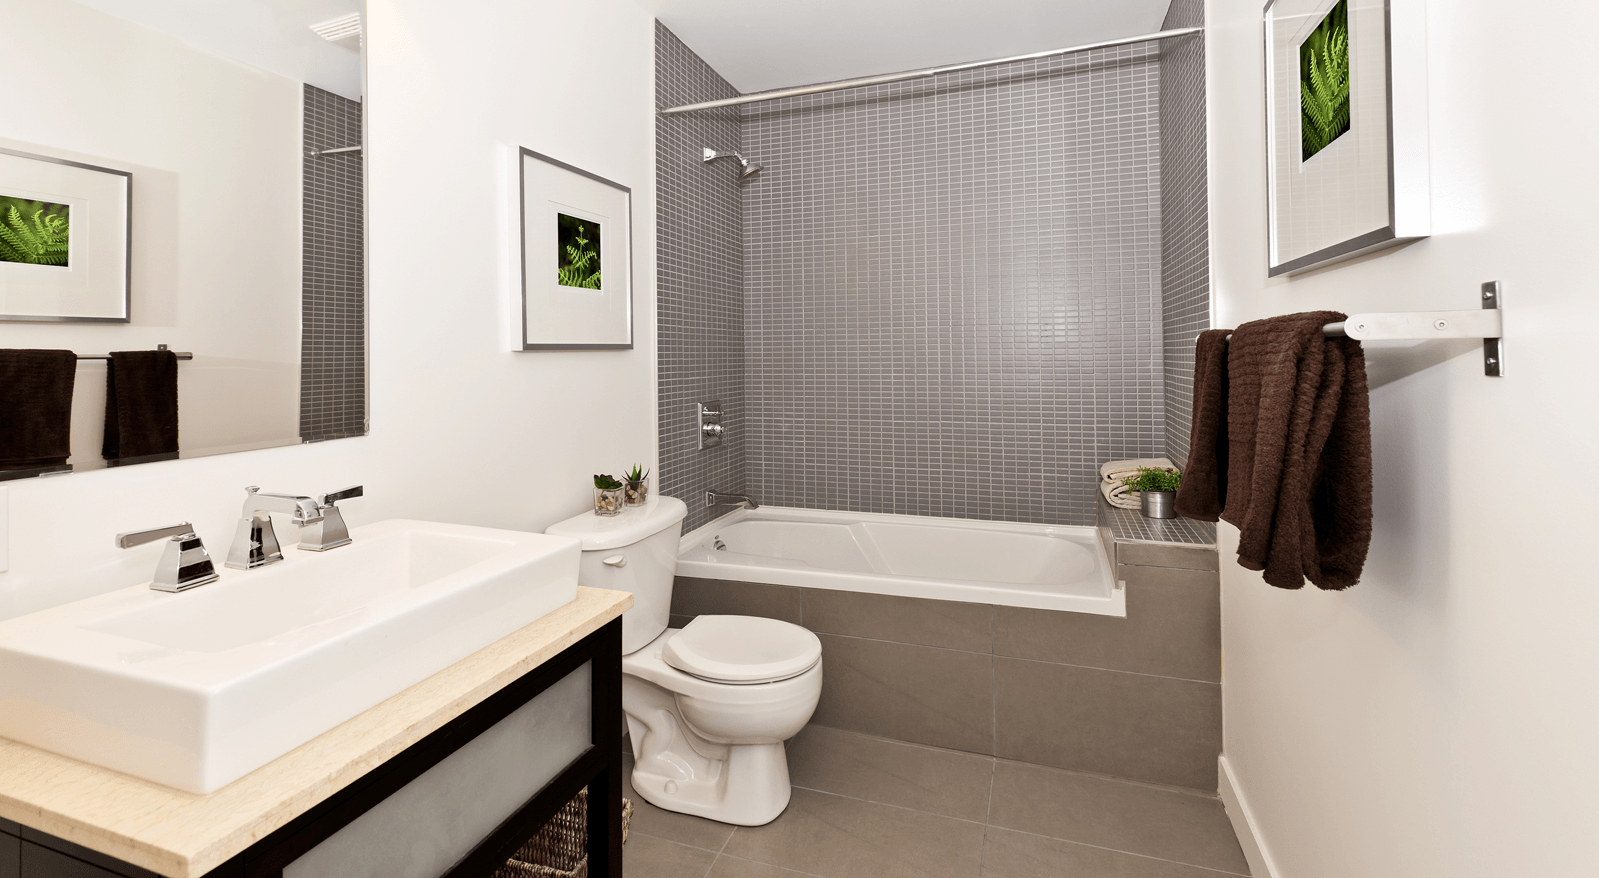 Home remodeling fort lauderdale fl home marcela Bathroom remodeling services